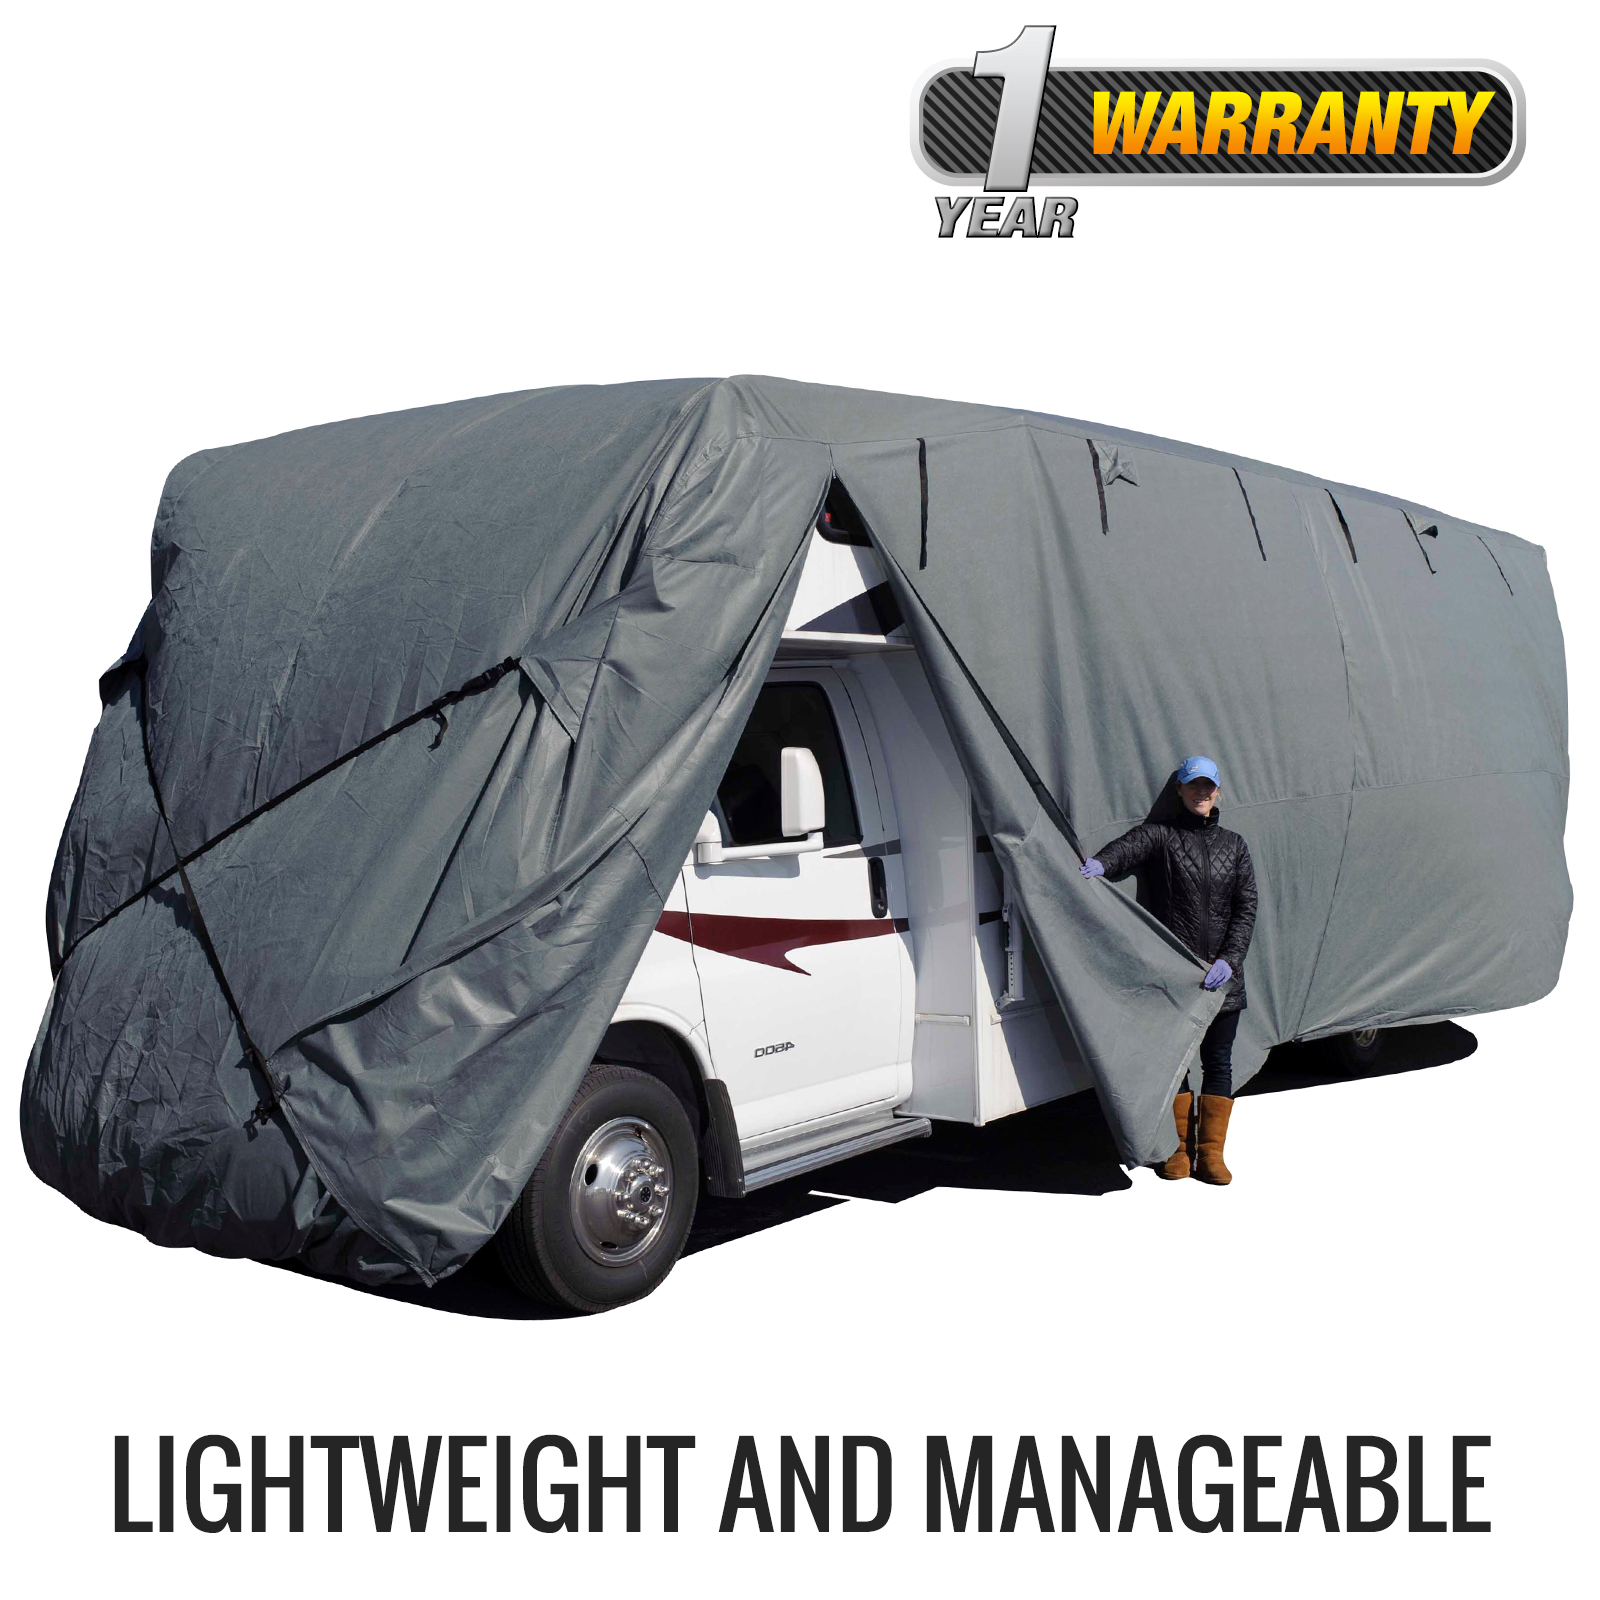 Budge Standard Class C RV Cover (Gray) Size A Up to 21' Long